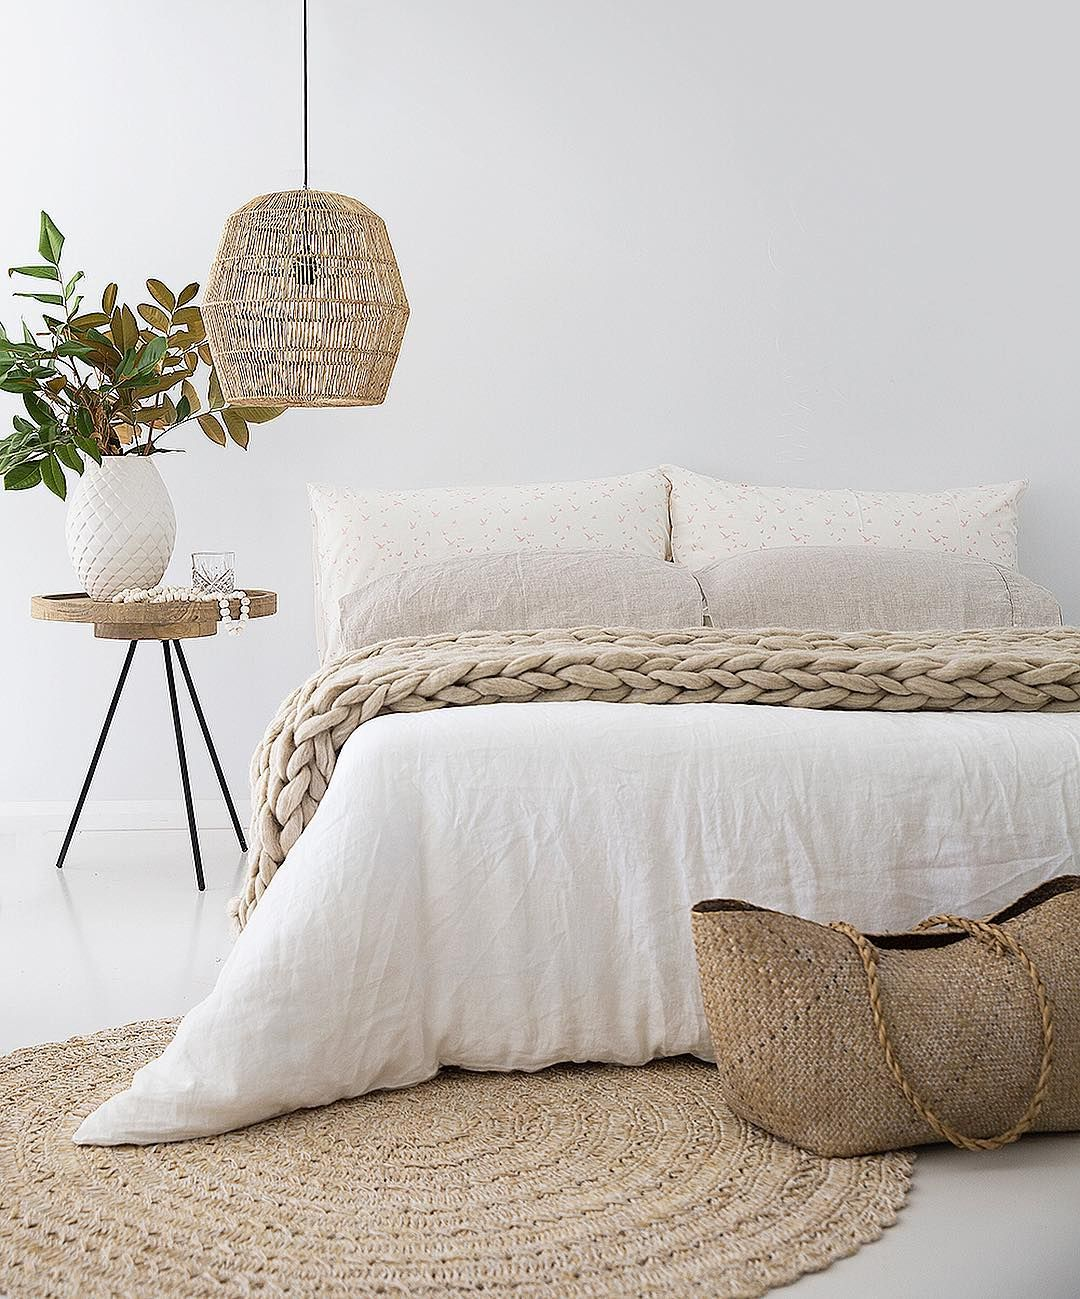 Bedroom With Neutral Colors And Natural Products   Sisal Rug, Linen Duvet  And Rattan Accessories